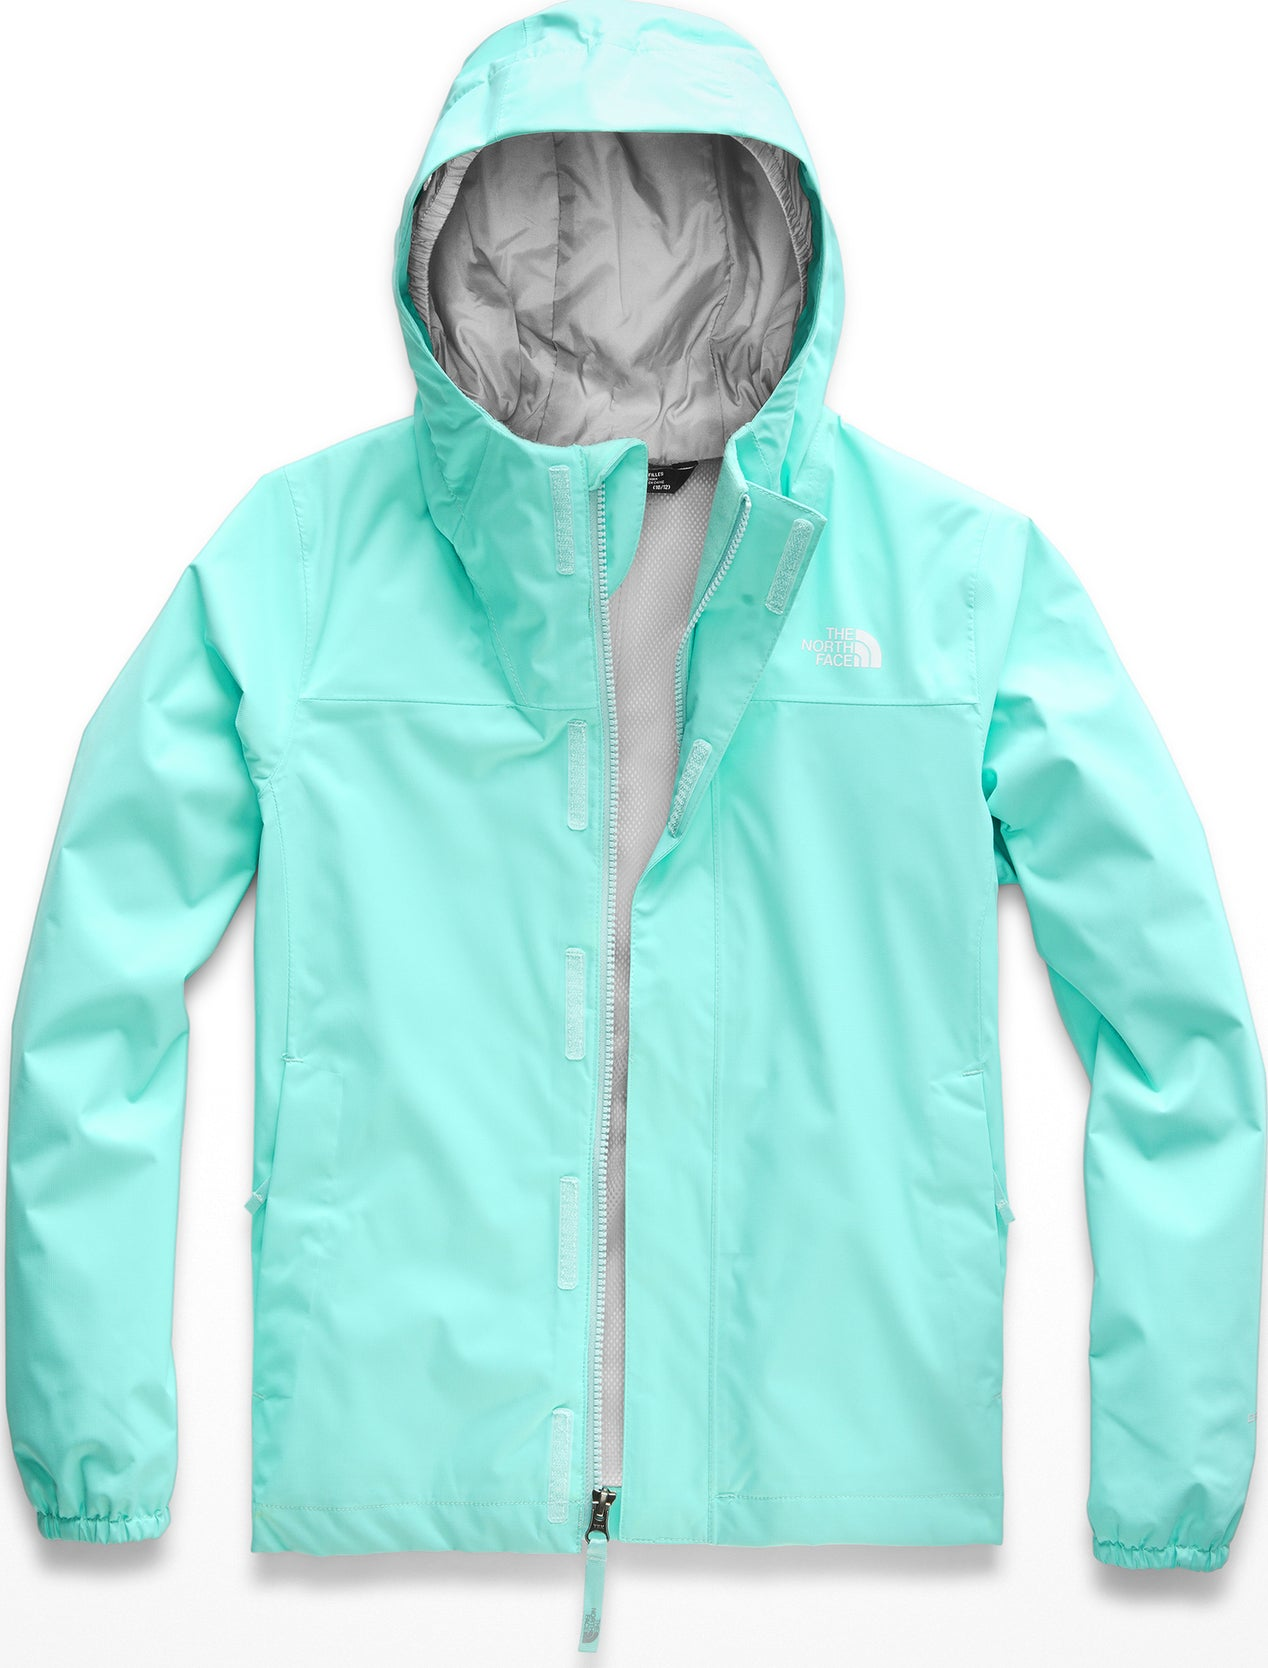 1c56578bb The North Face Resolve Reflective Jacket - Girls | Altitude Sports